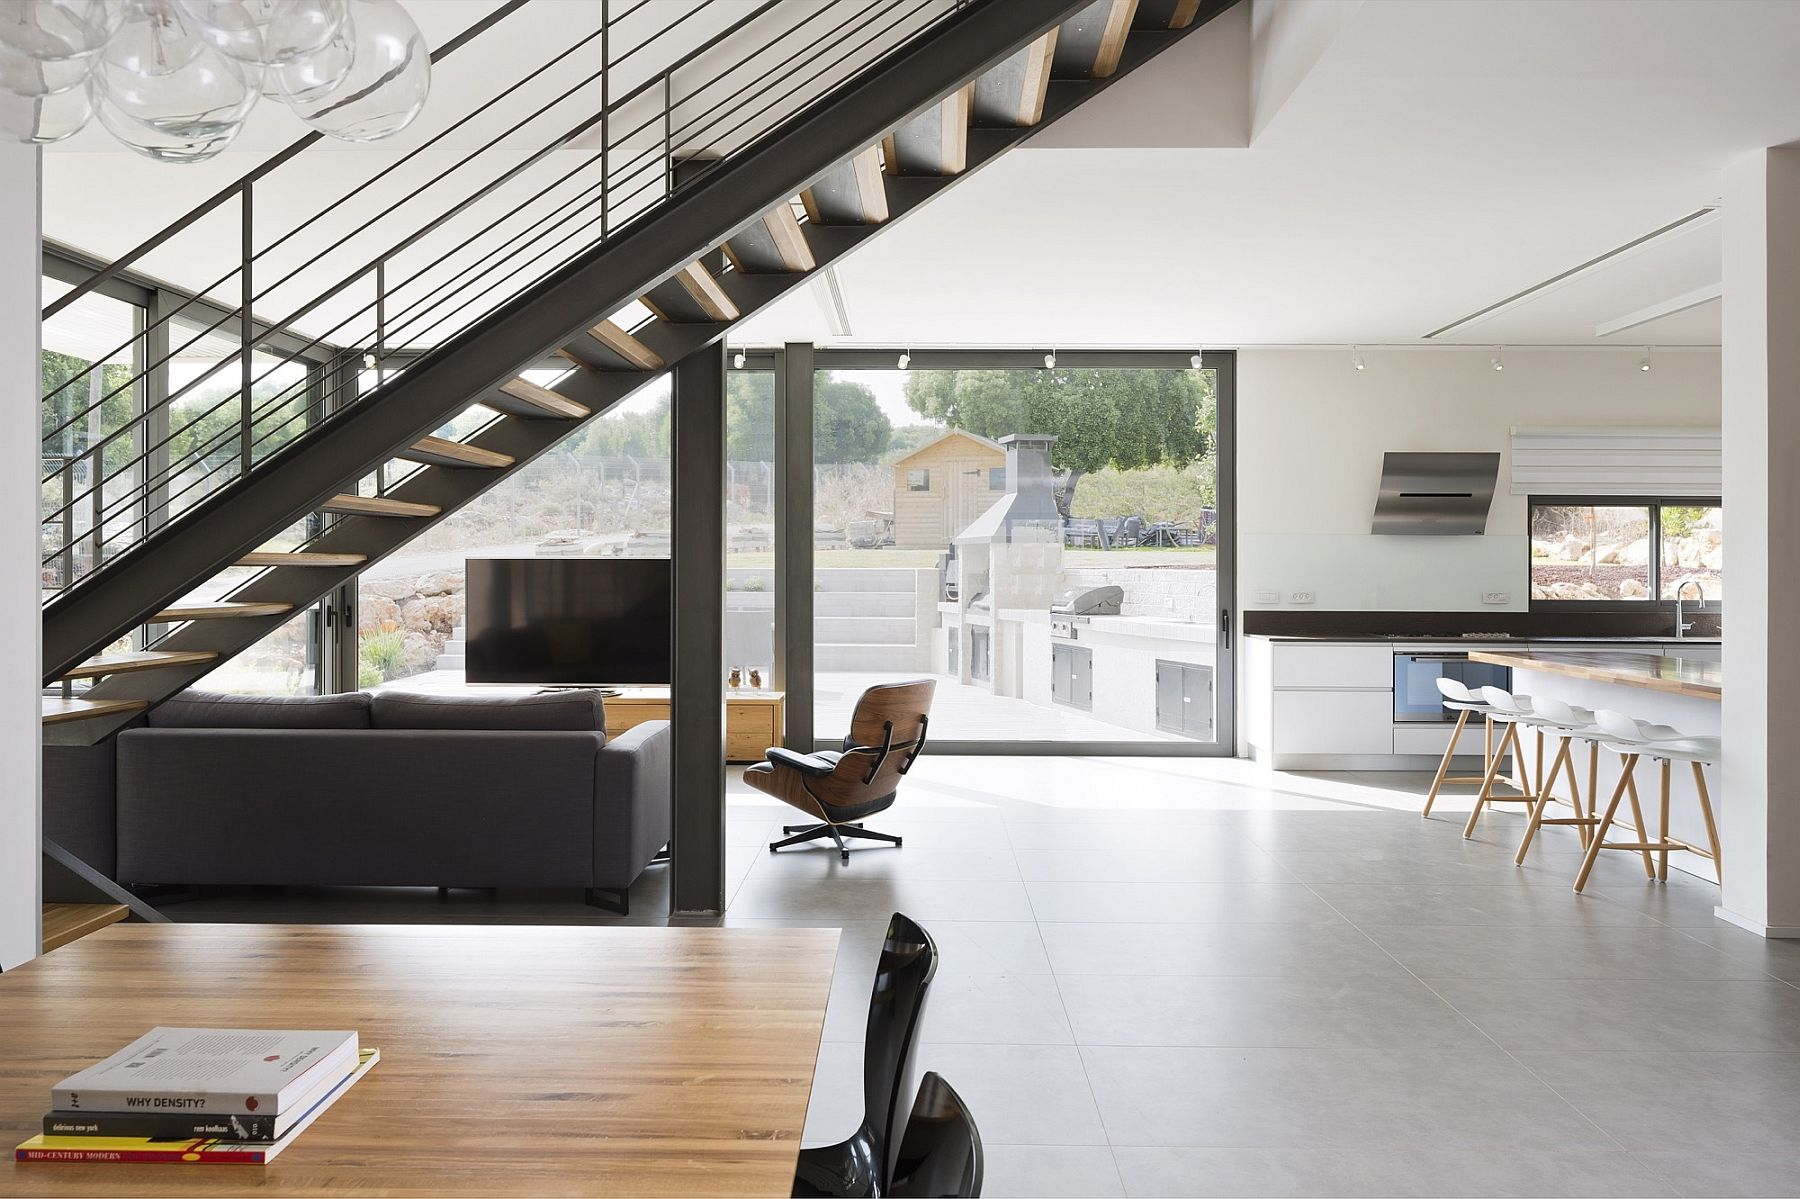 Exquisite metallic staircase connects the living area level with the master bedroom above